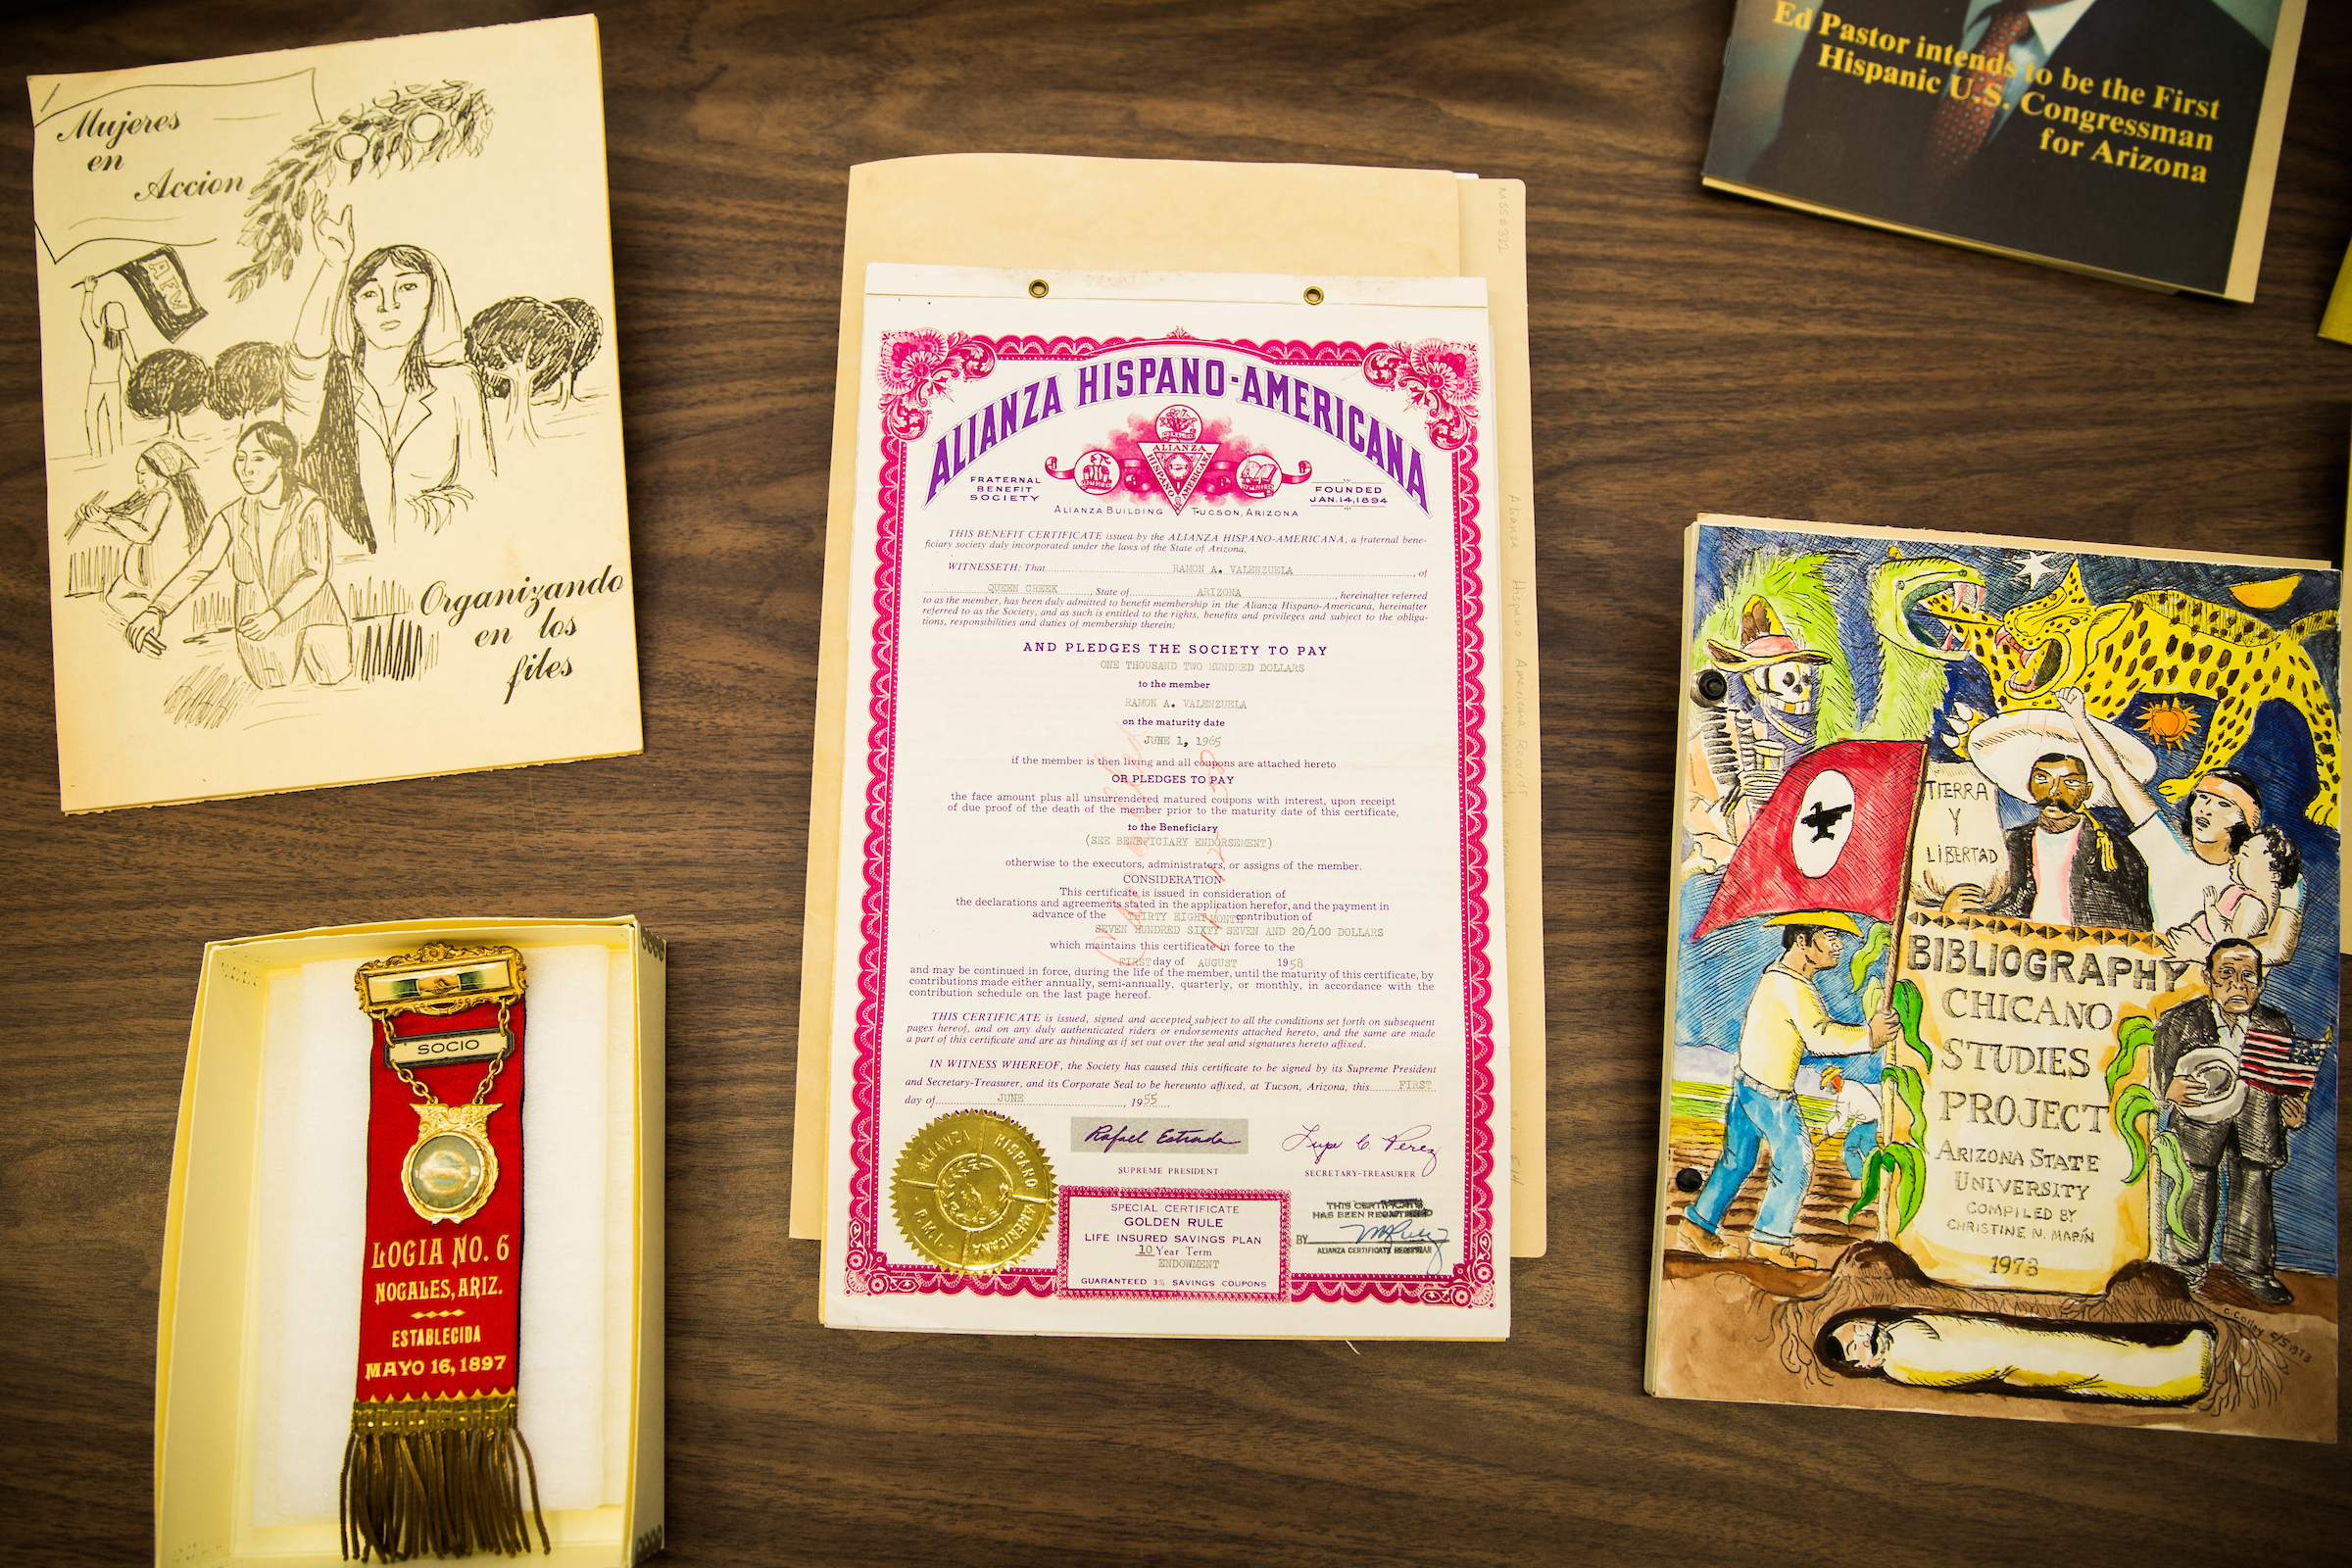 items from archive on table